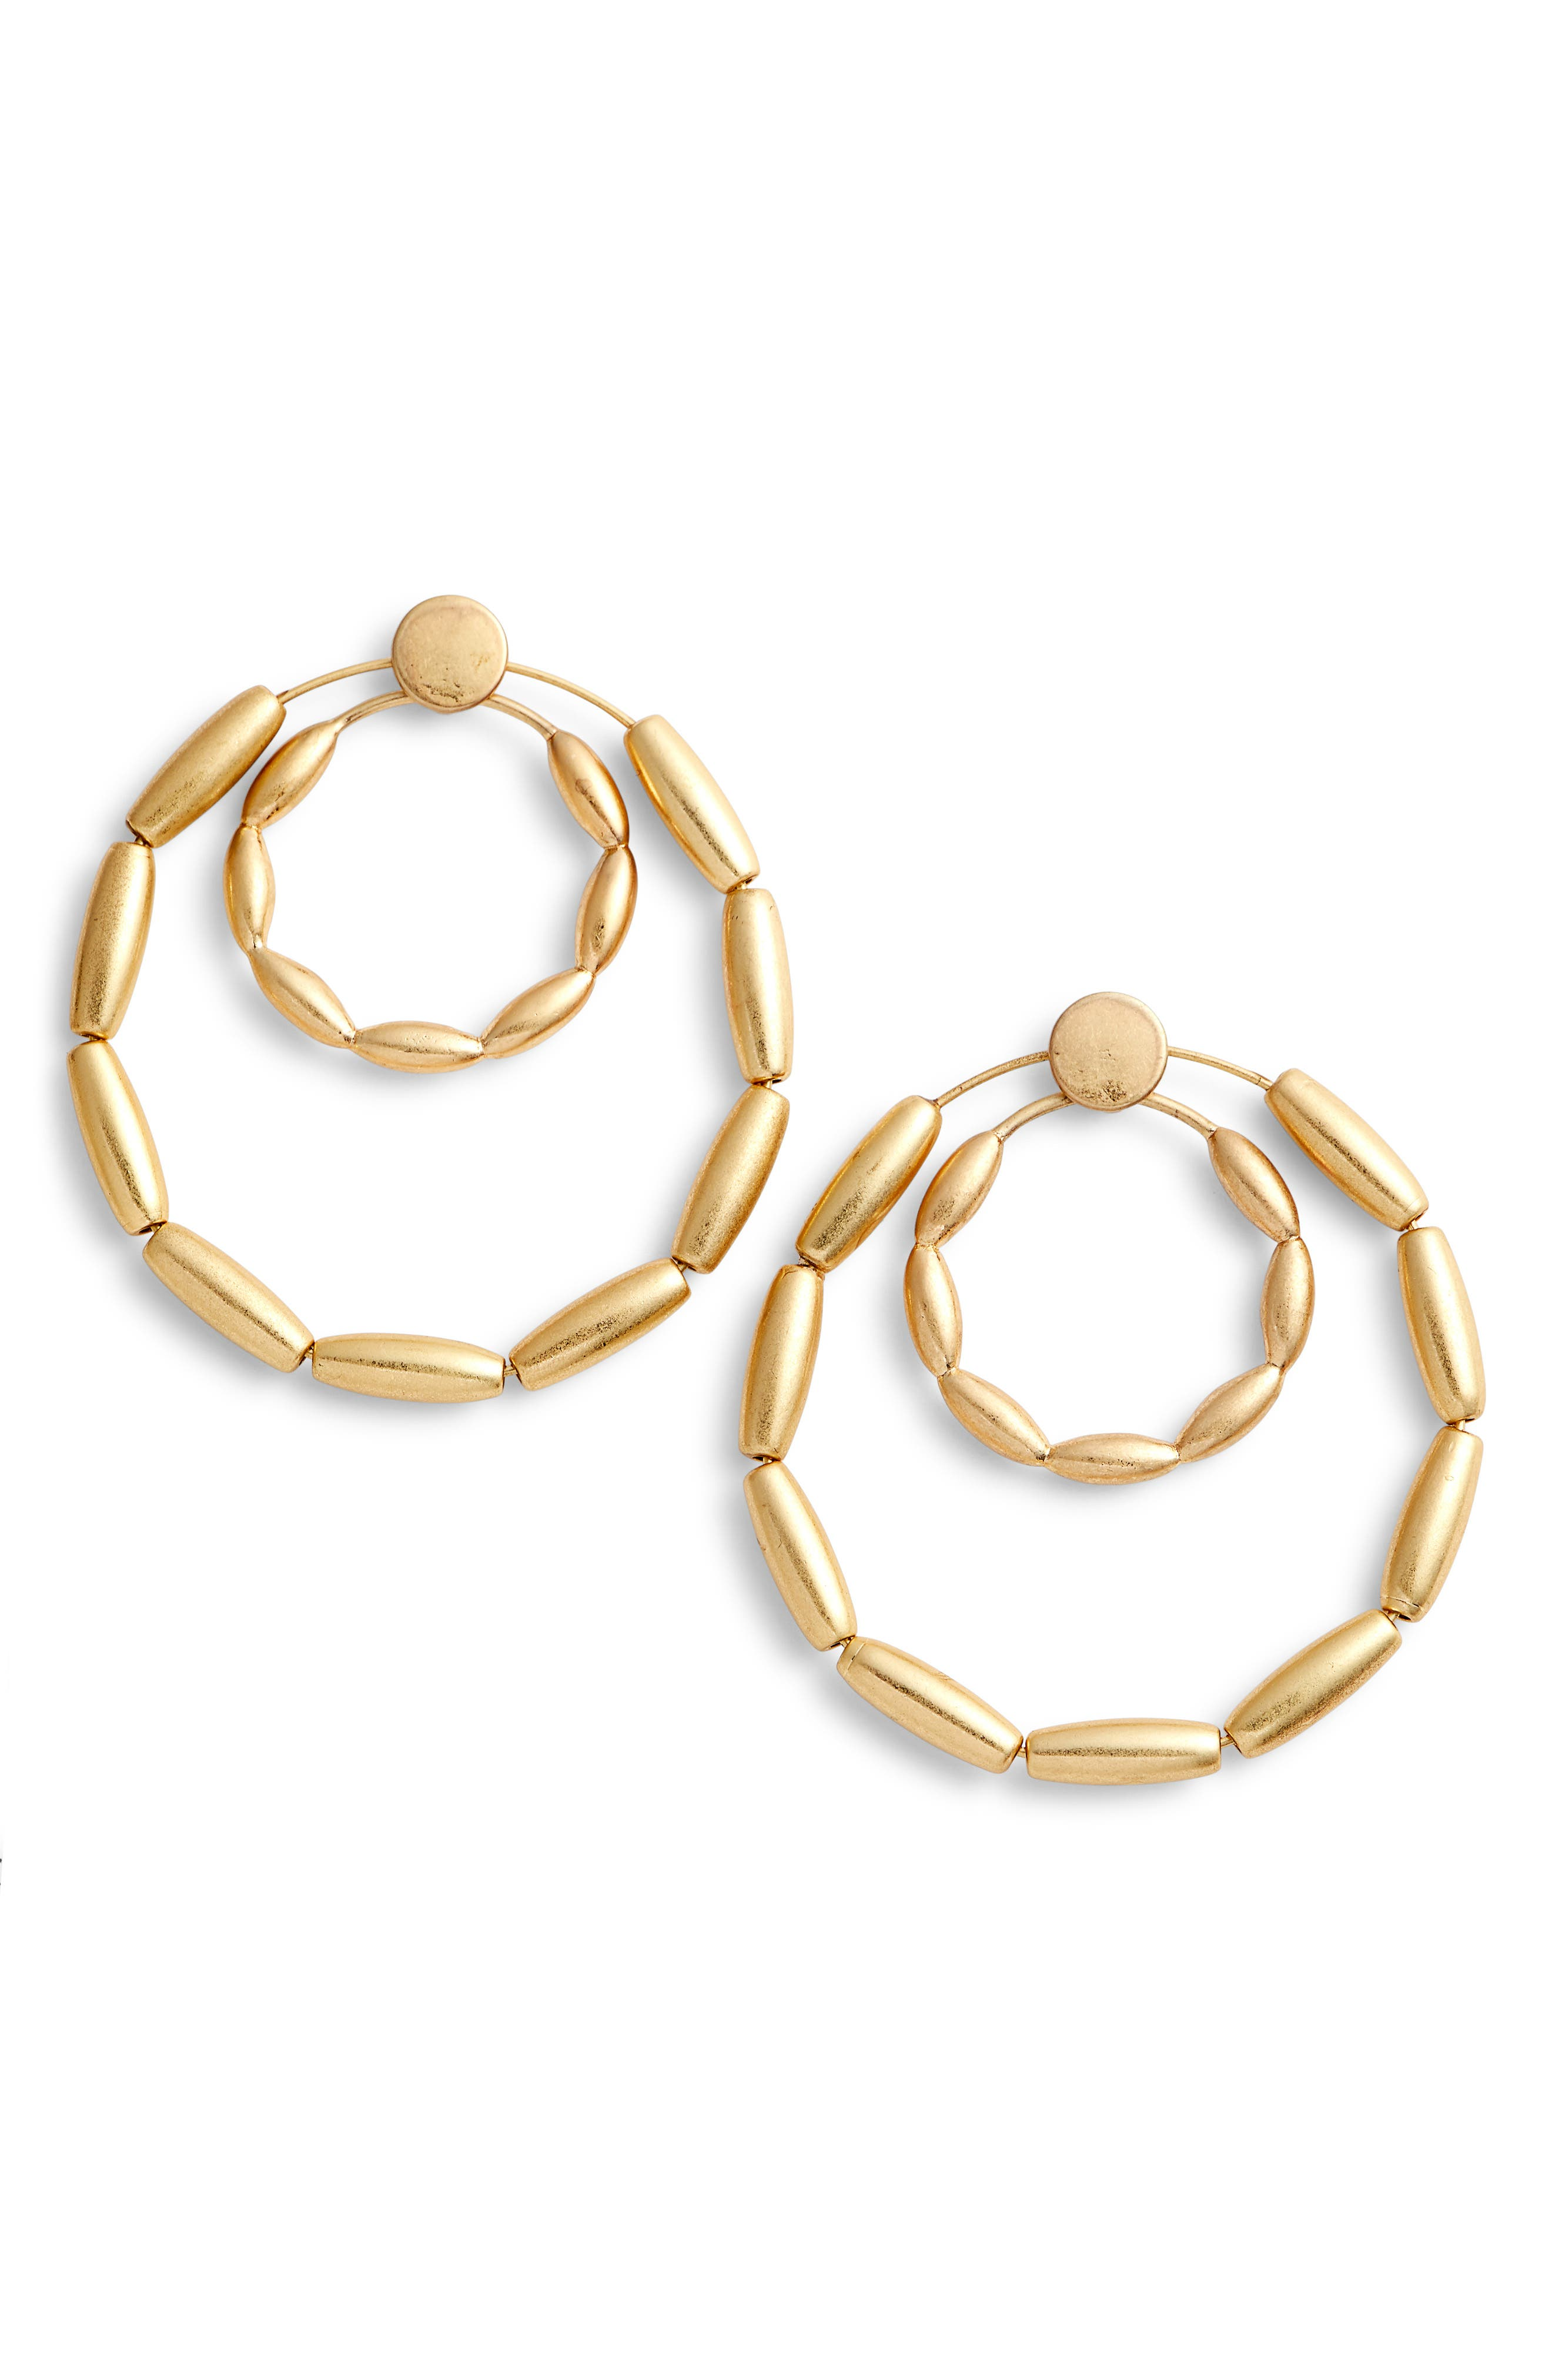 Sadie Front Facing Double Hoop Earrings,                             Main thumbnail 1, color,                             Gold